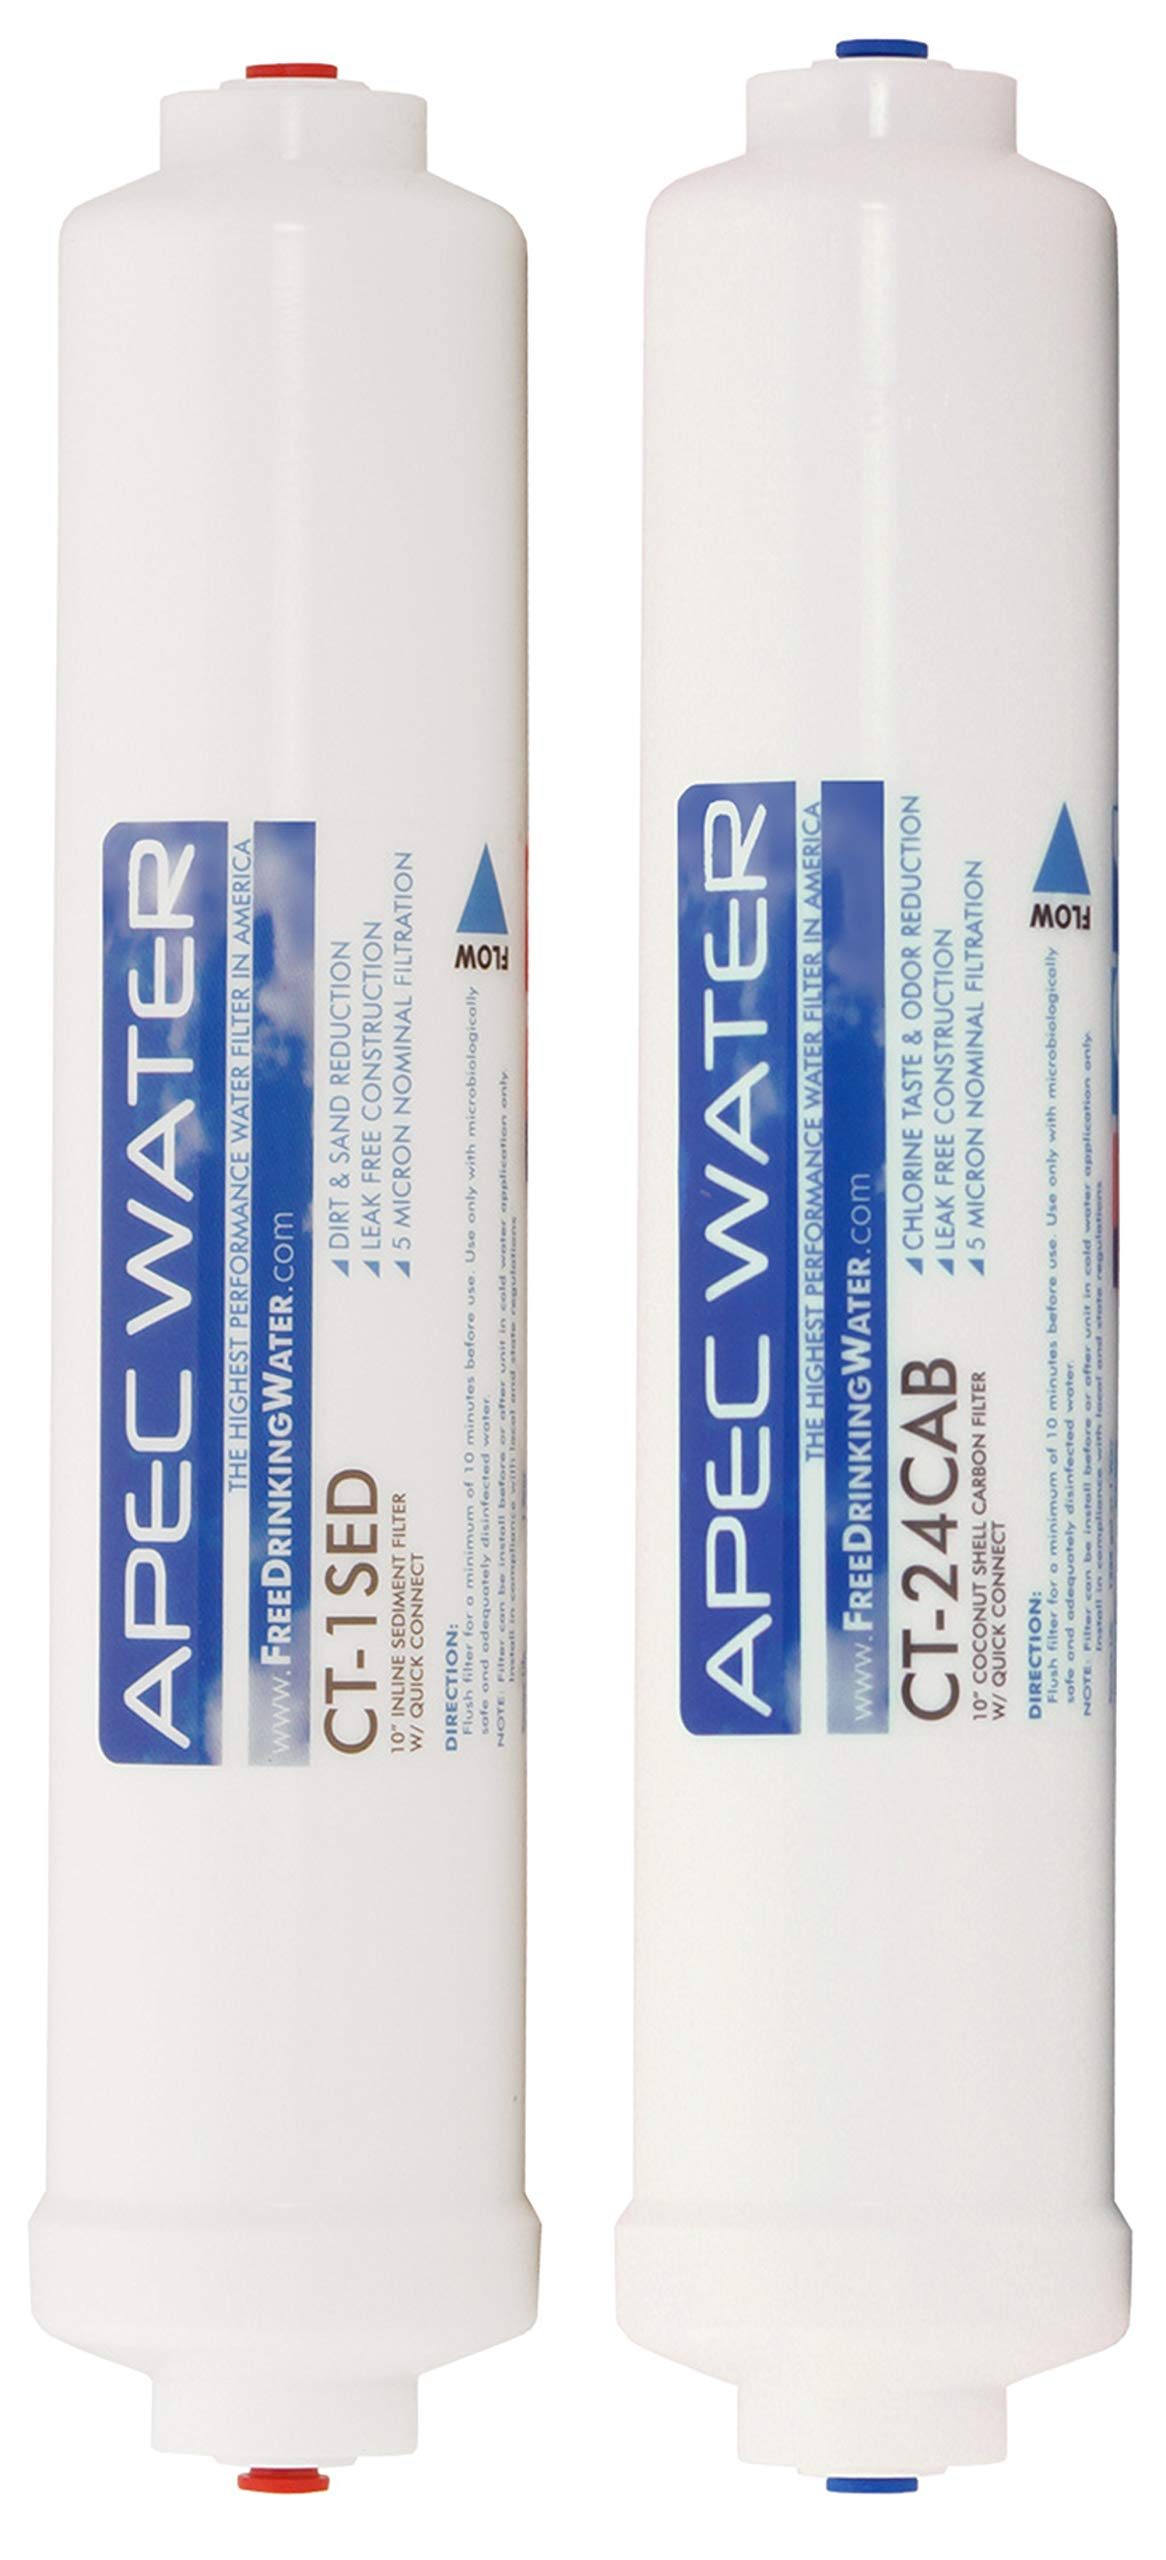 APEC Water Systems FILTER-SET-CTOP Countertop Reverse Osmosis Water Filter System,